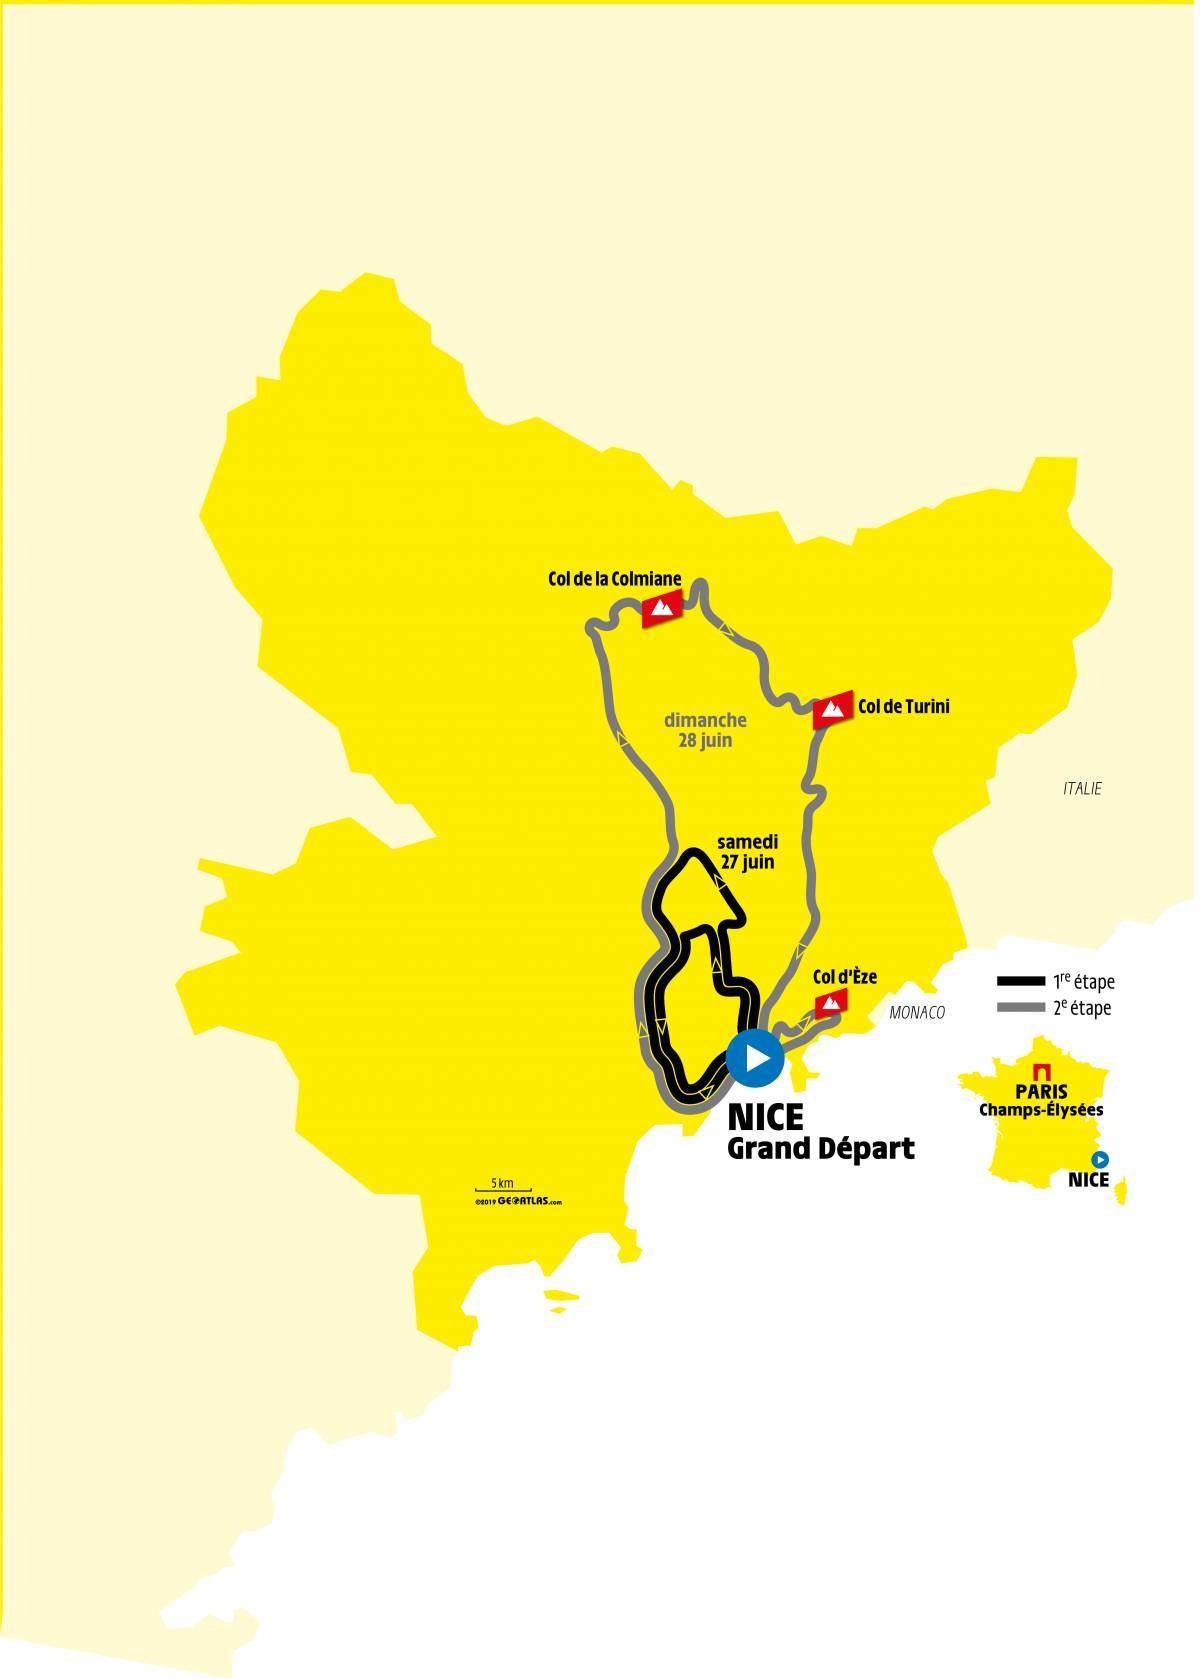 Circuit stages 1 and 2 of the Tour de France 2020 - Credit ASO